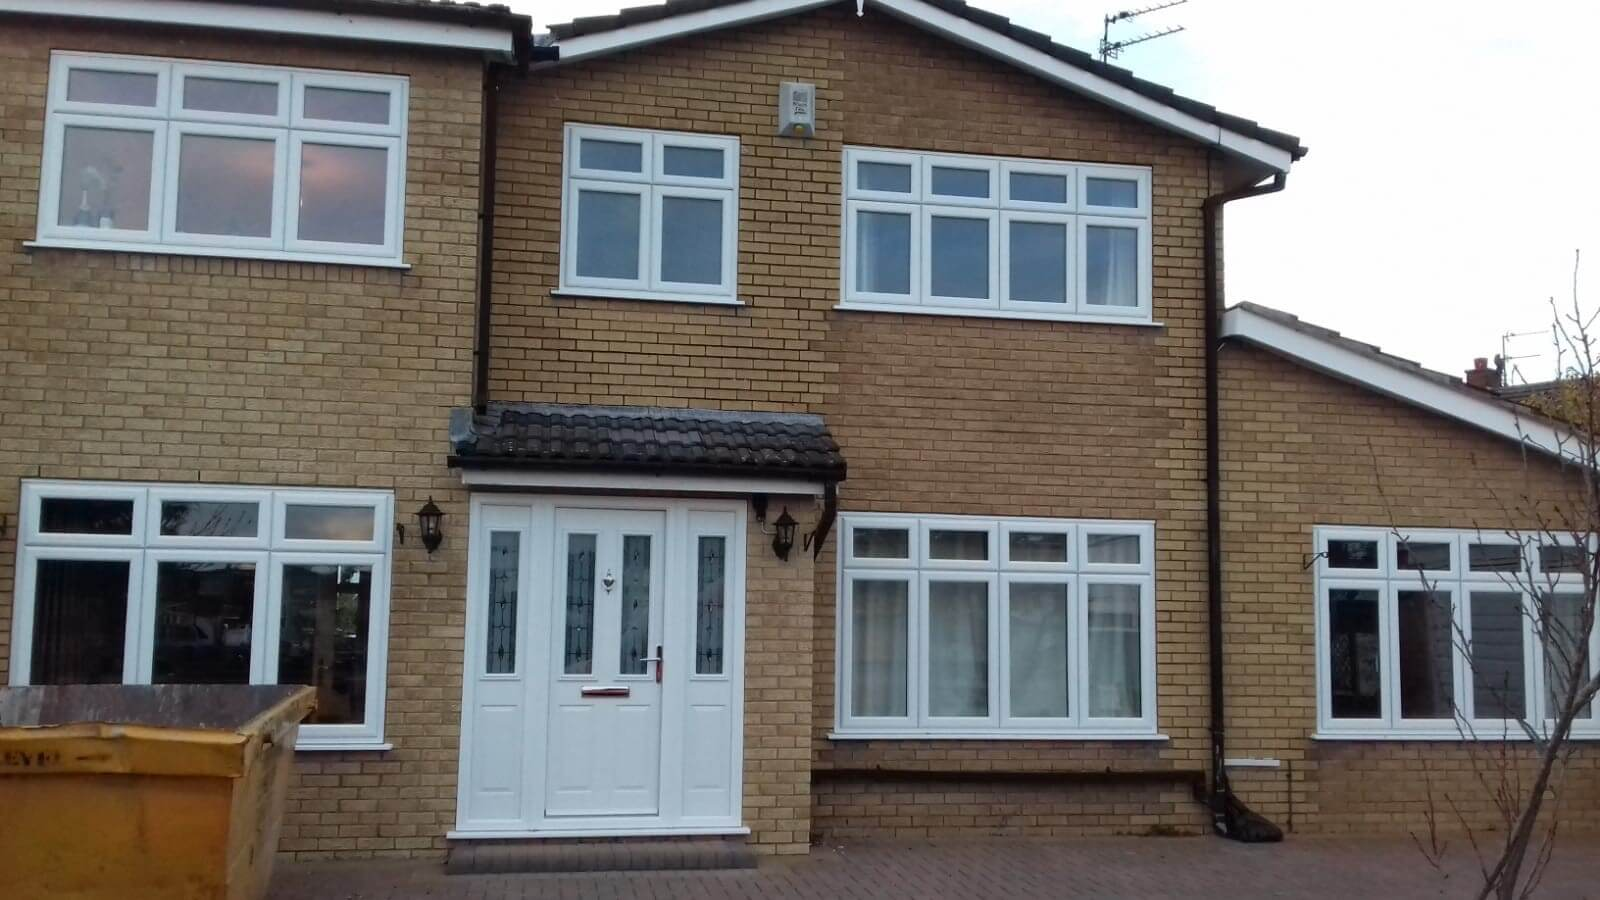 pvc, upvc. windows, front door, door, replacement, aluminium, ormskirk, lancashire, celsius home improvements